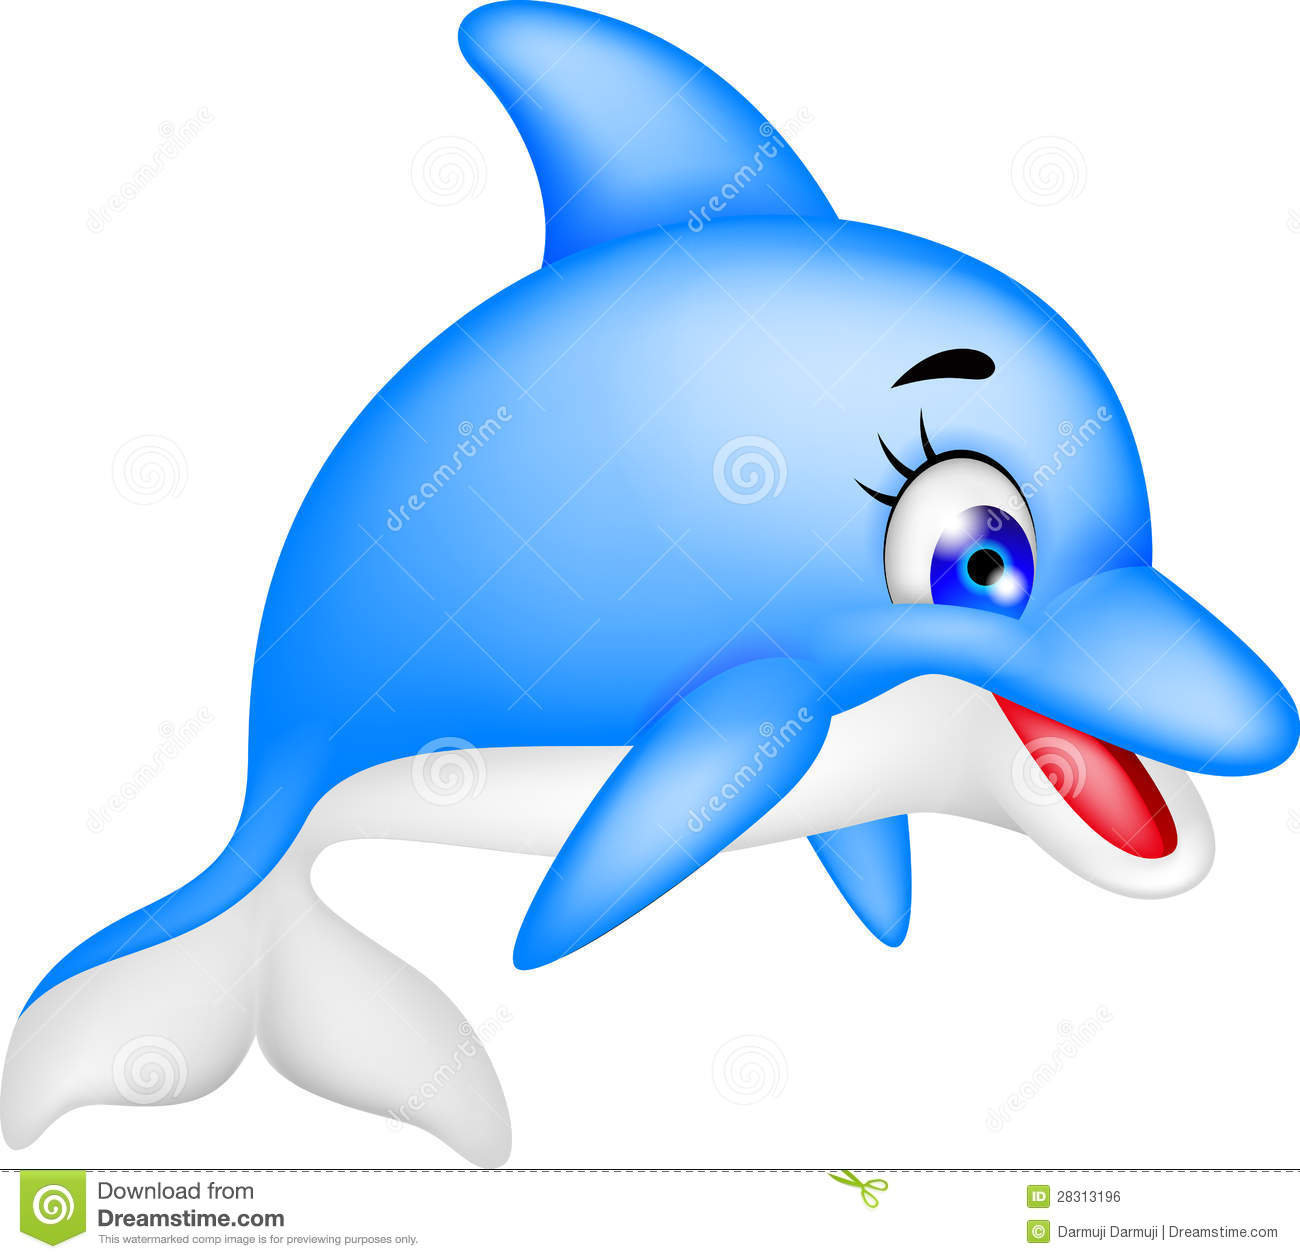 Royalty Free Stock Image Funny Dolphin Cartoon Image28313196 on Fish Clip Art With Transparent Background